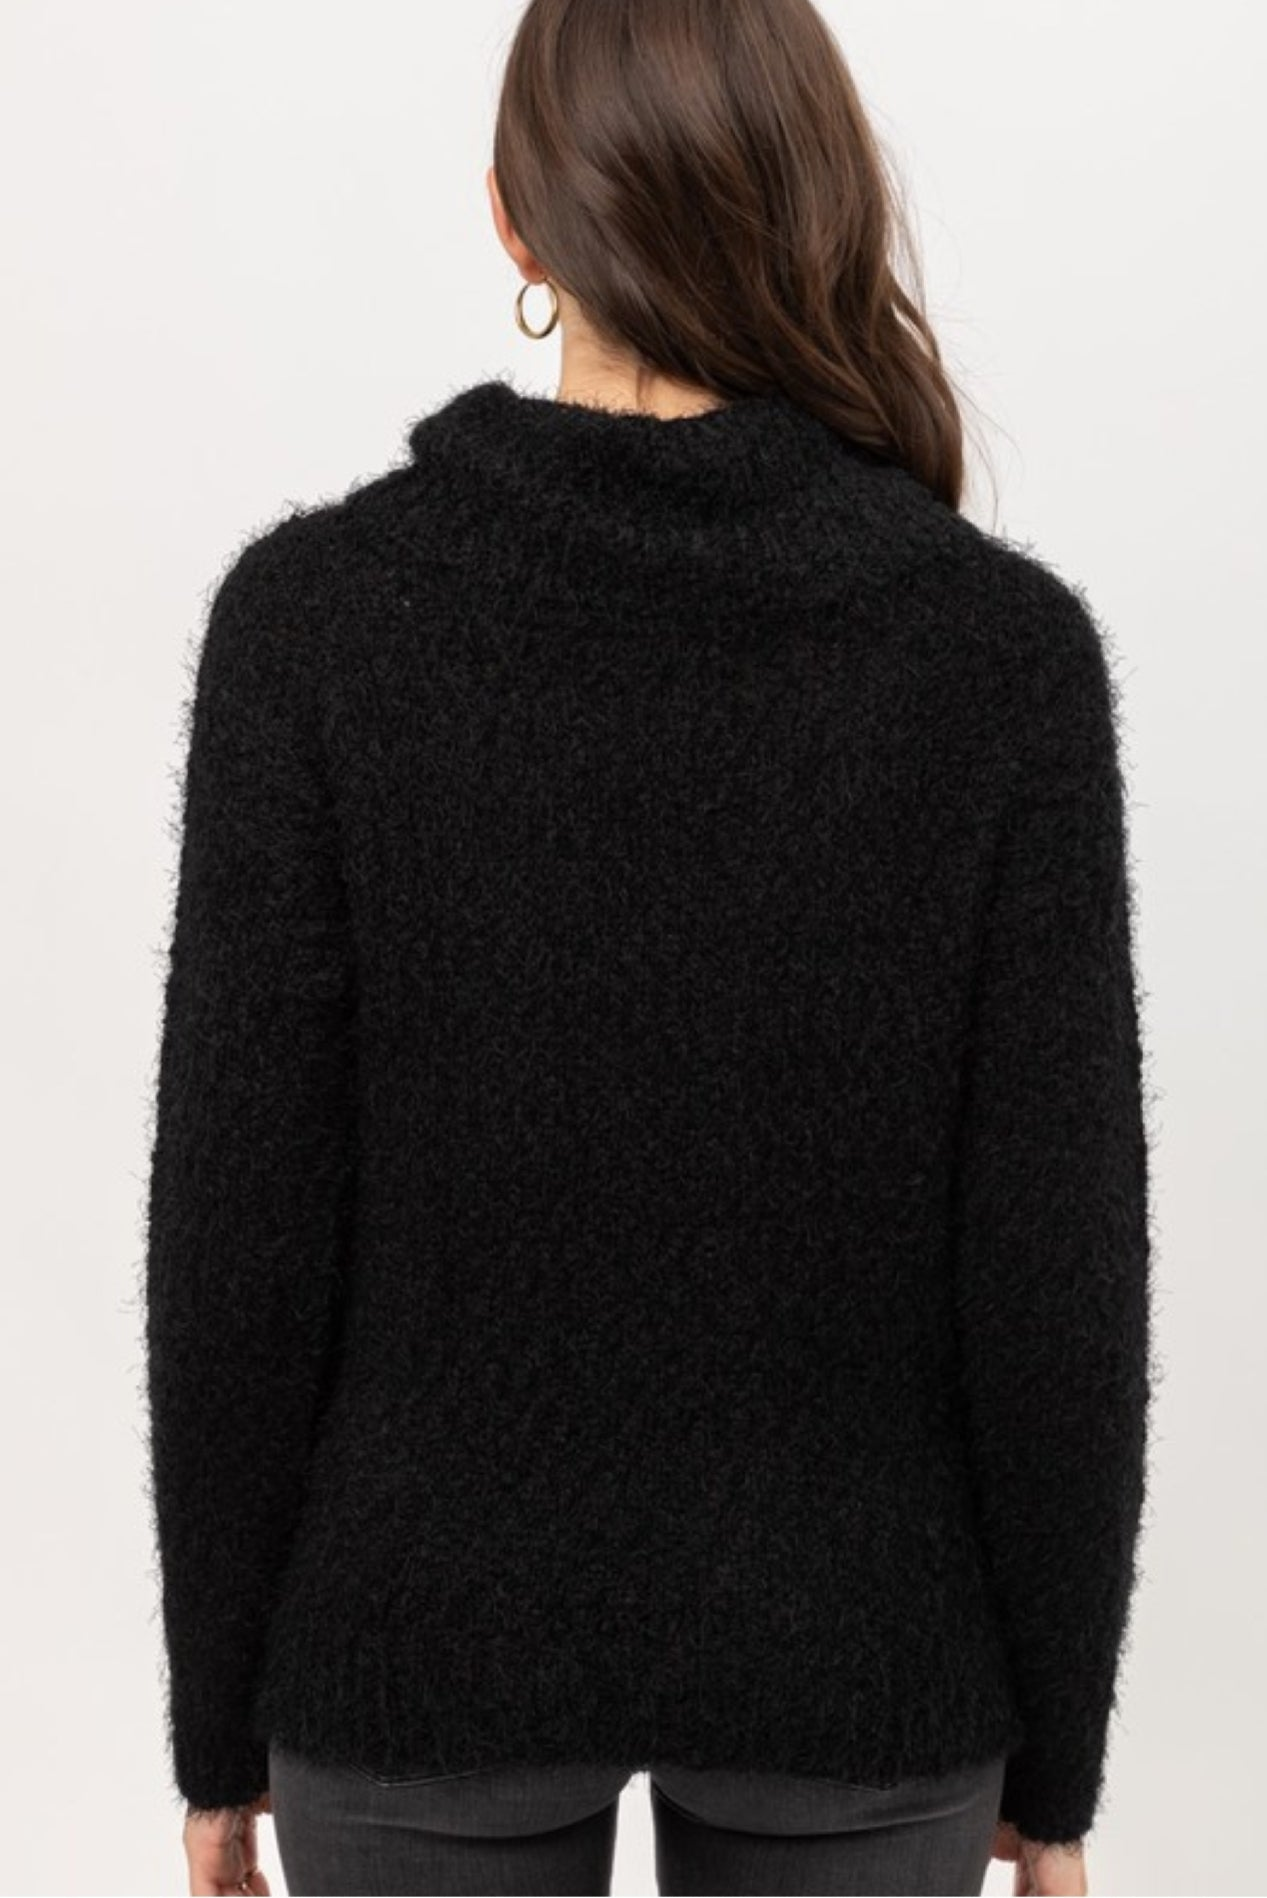 Super Soft Fuzzy Black Turtleneck Sweater